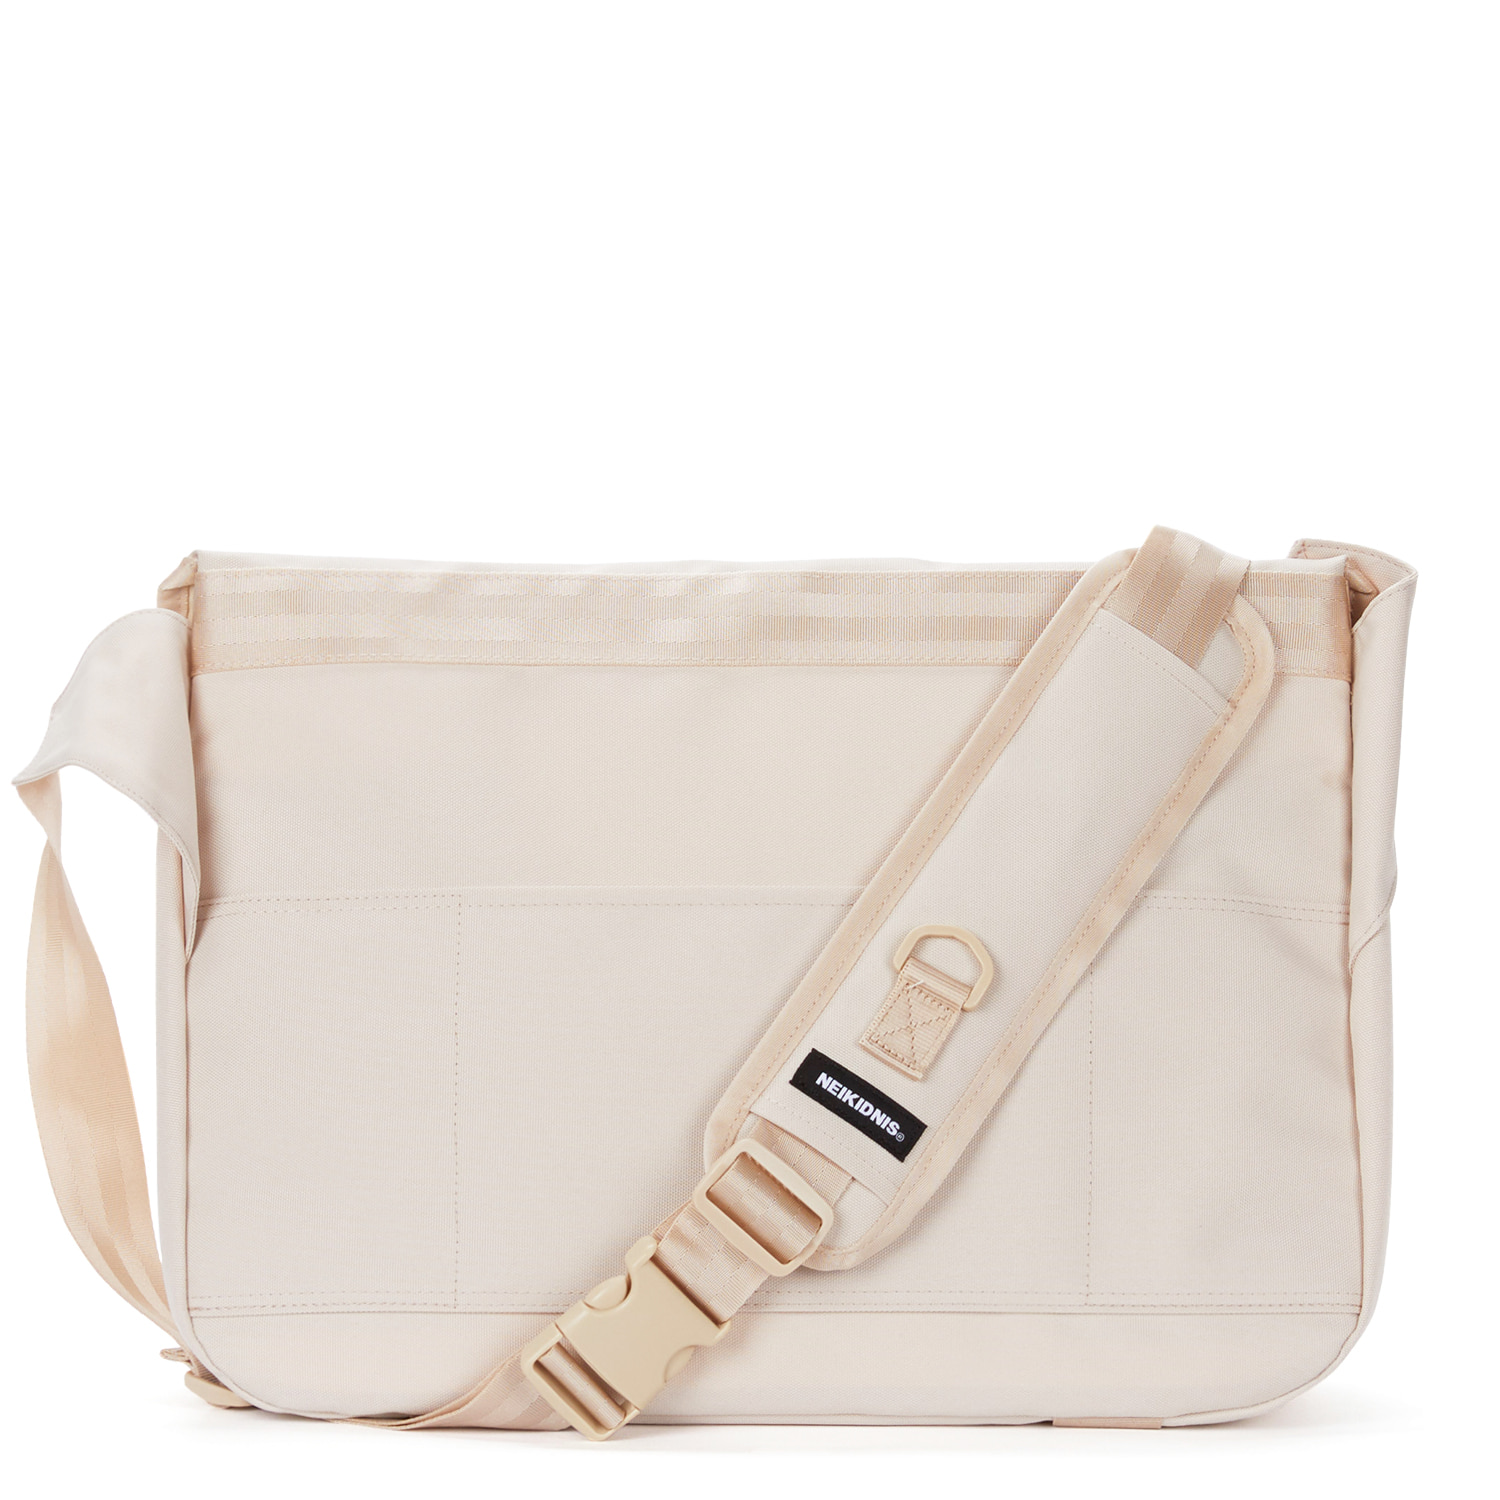 WIDE VISION MESSENGER BAG / LIGHT BEIGE